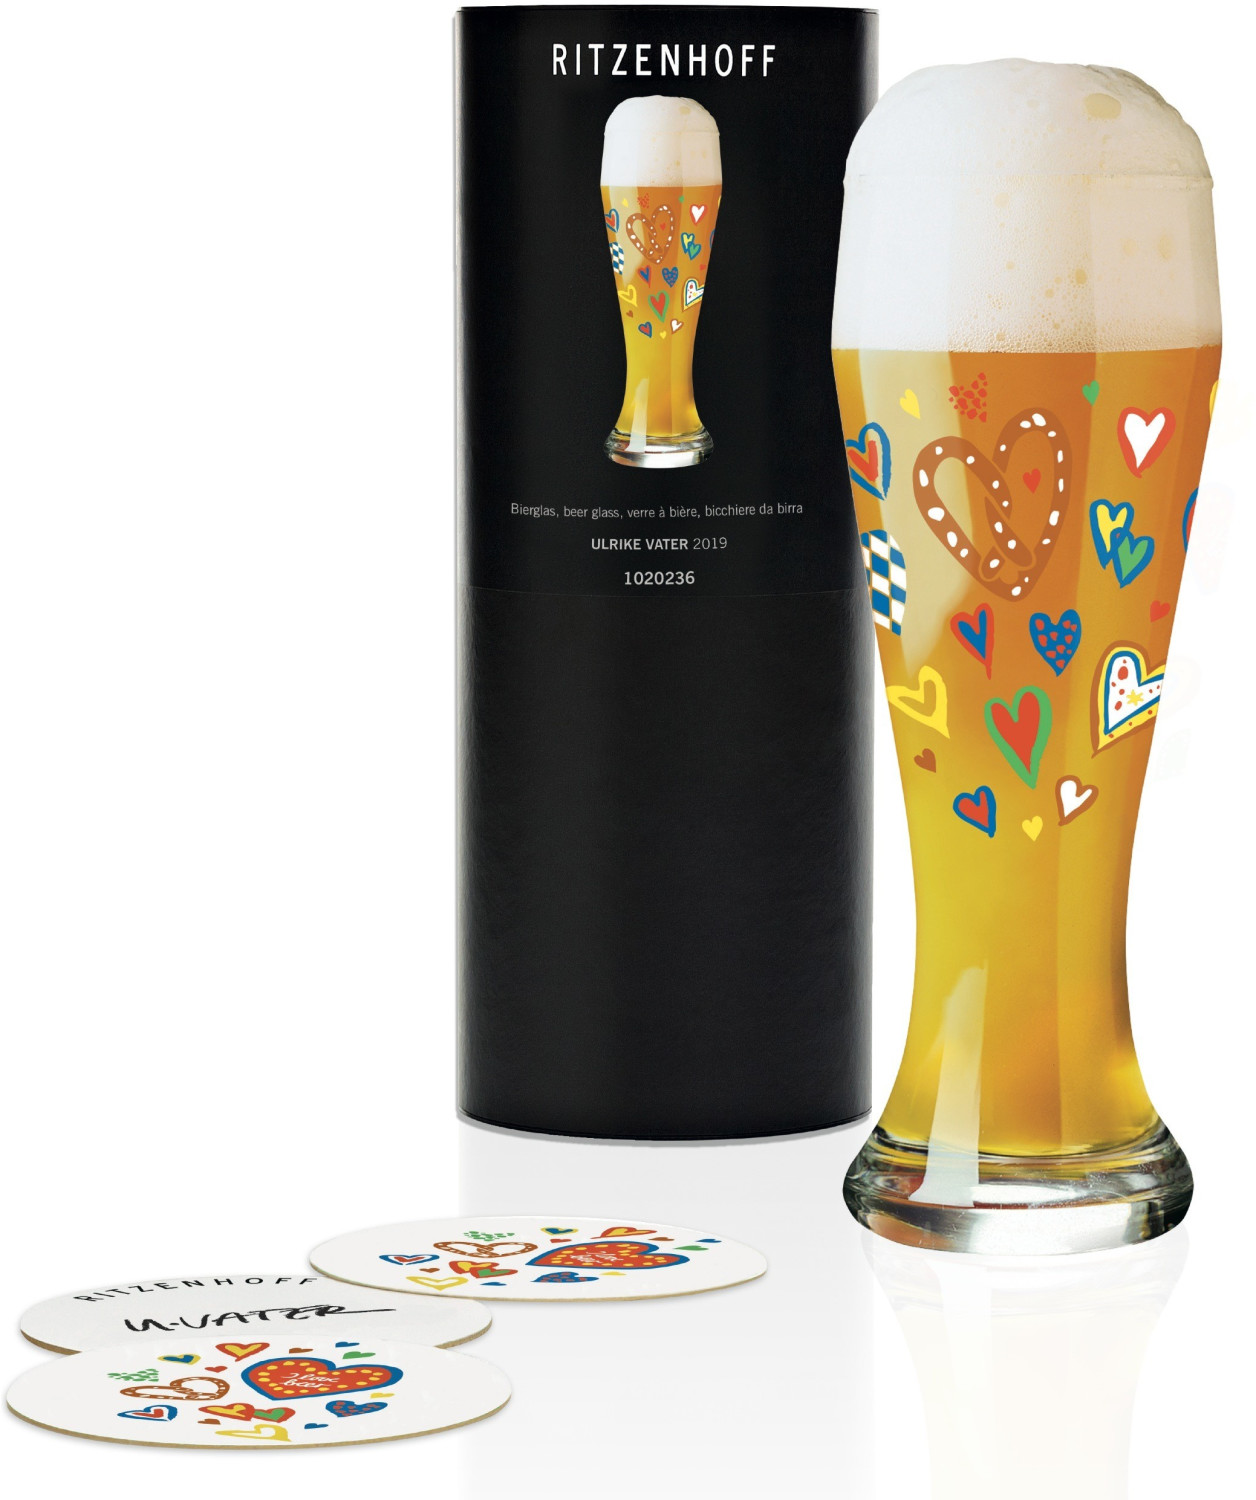 Image of Ritzenhoff Wheat beer glass 0.5 l spring 2019